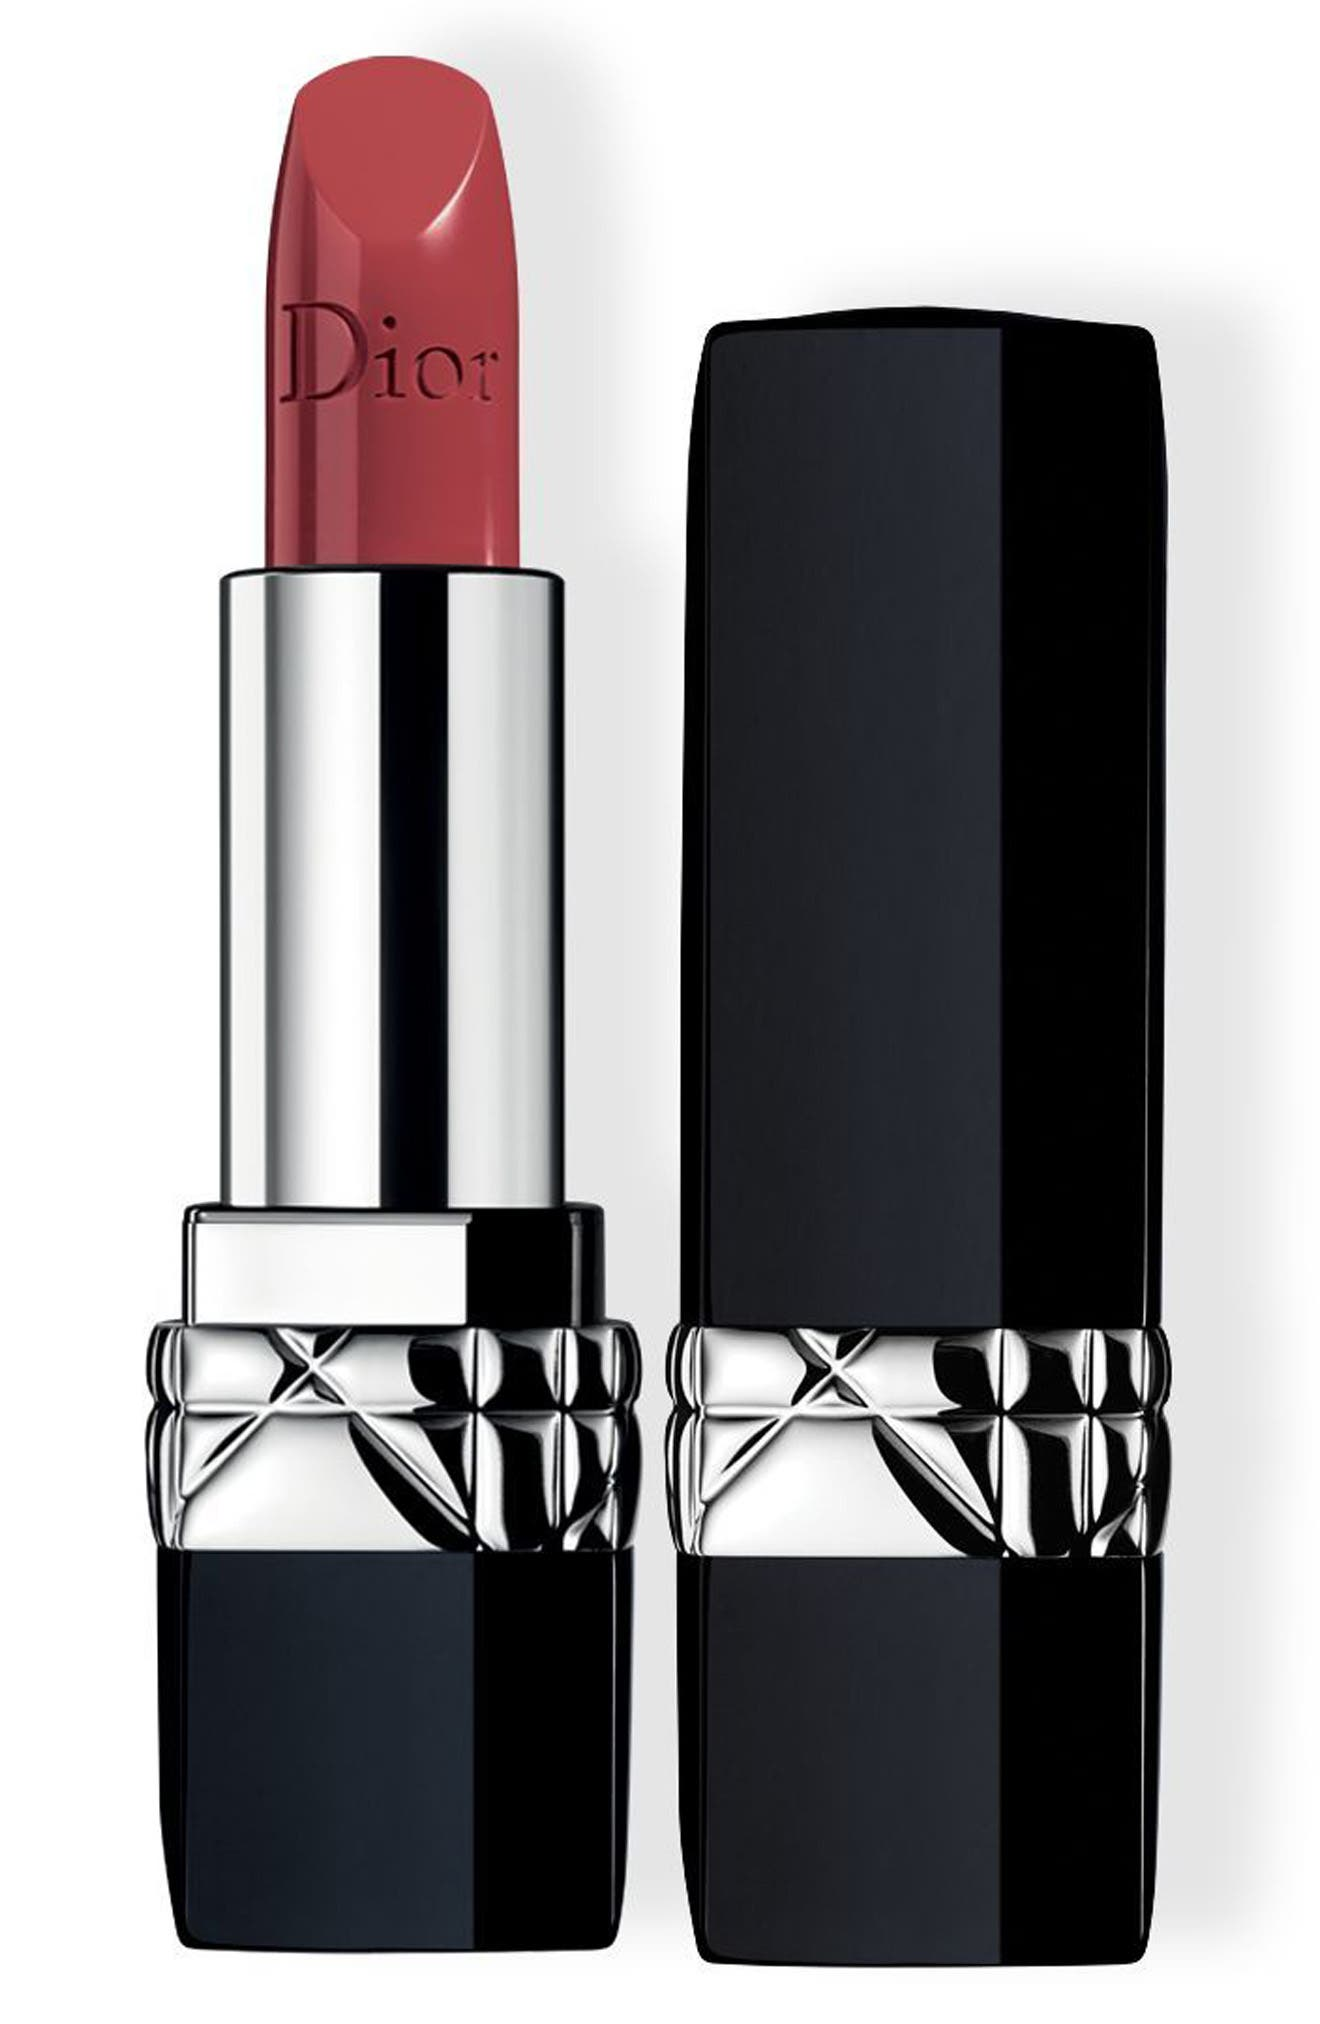 Dior Couture Color Rouge Dior Lipstick - 644 Sydney